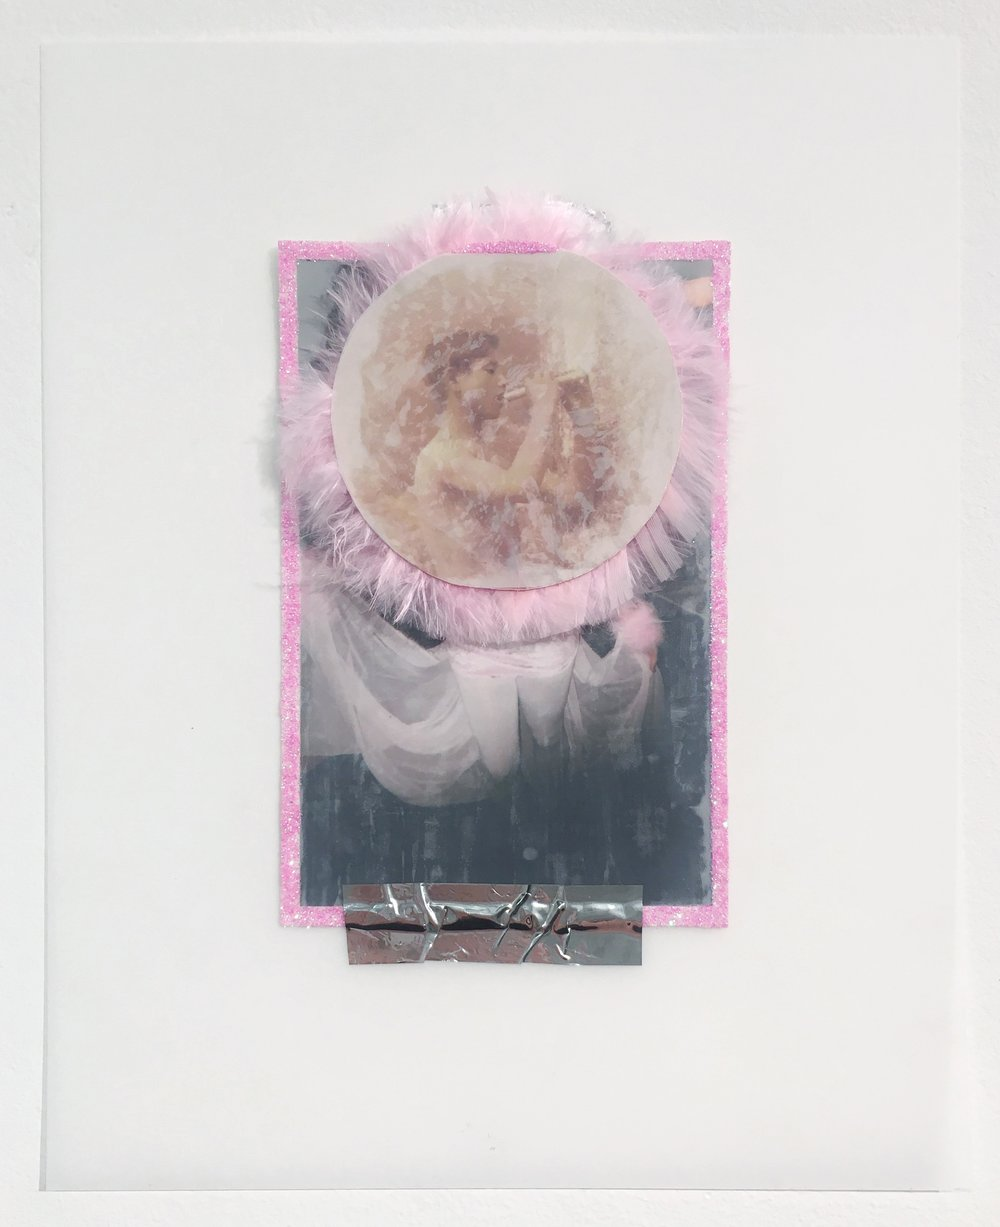 Untitled (Hey QT), 2018, Collaged photographs, glitter, feathers, postcards, tape, and duralar, 10 x 8 inches.